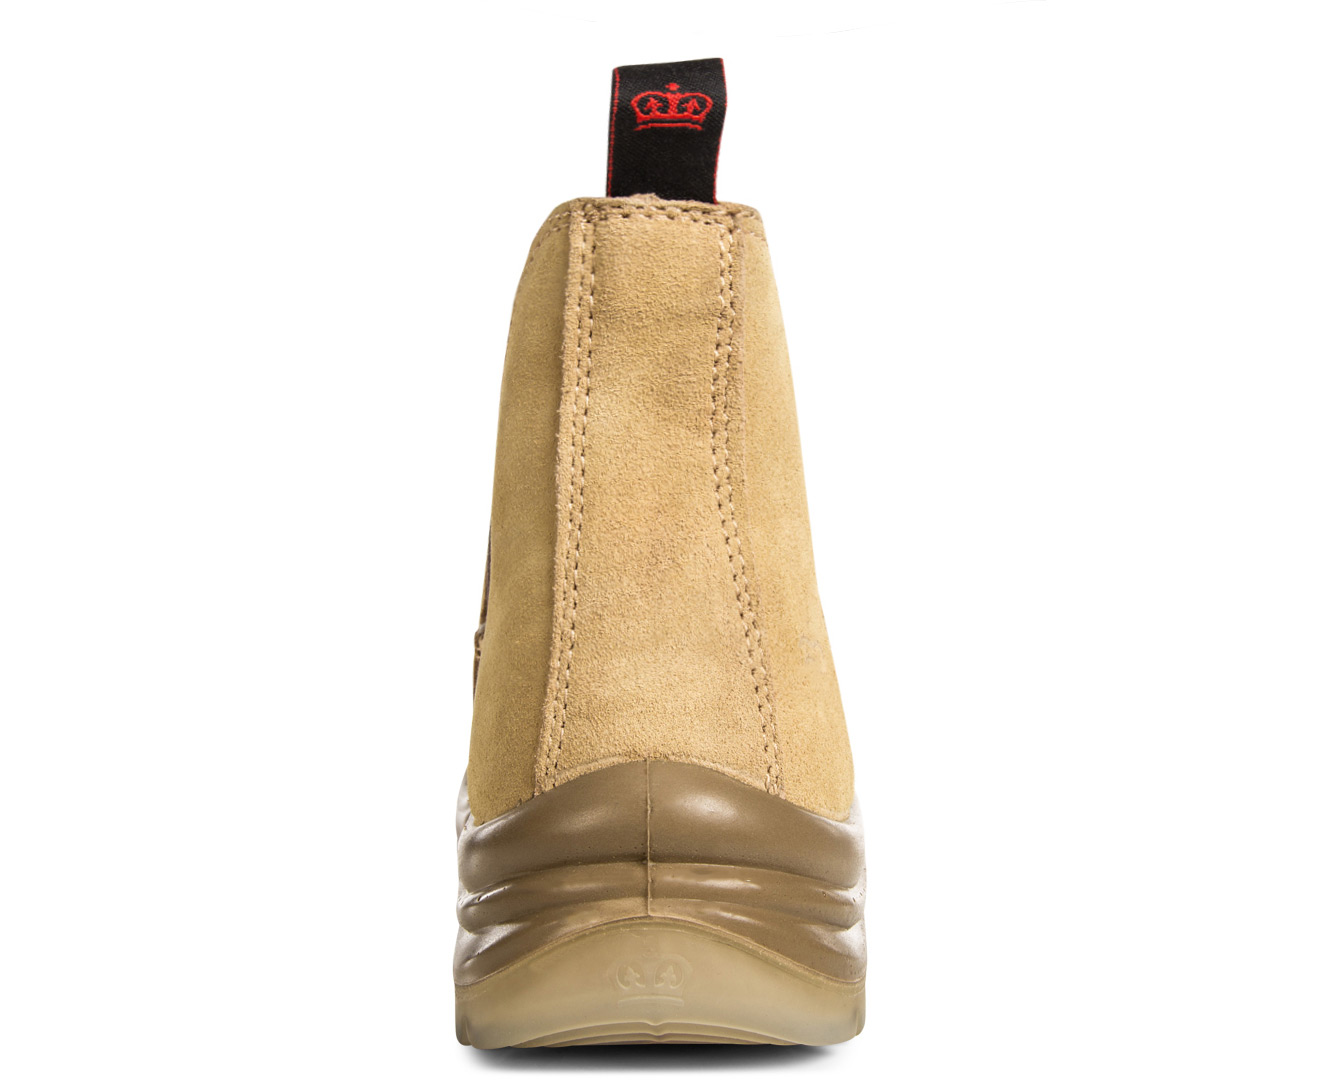 70c0b0dd442 King Gee Men's Flinders Non Safety Suede Boots - Sand